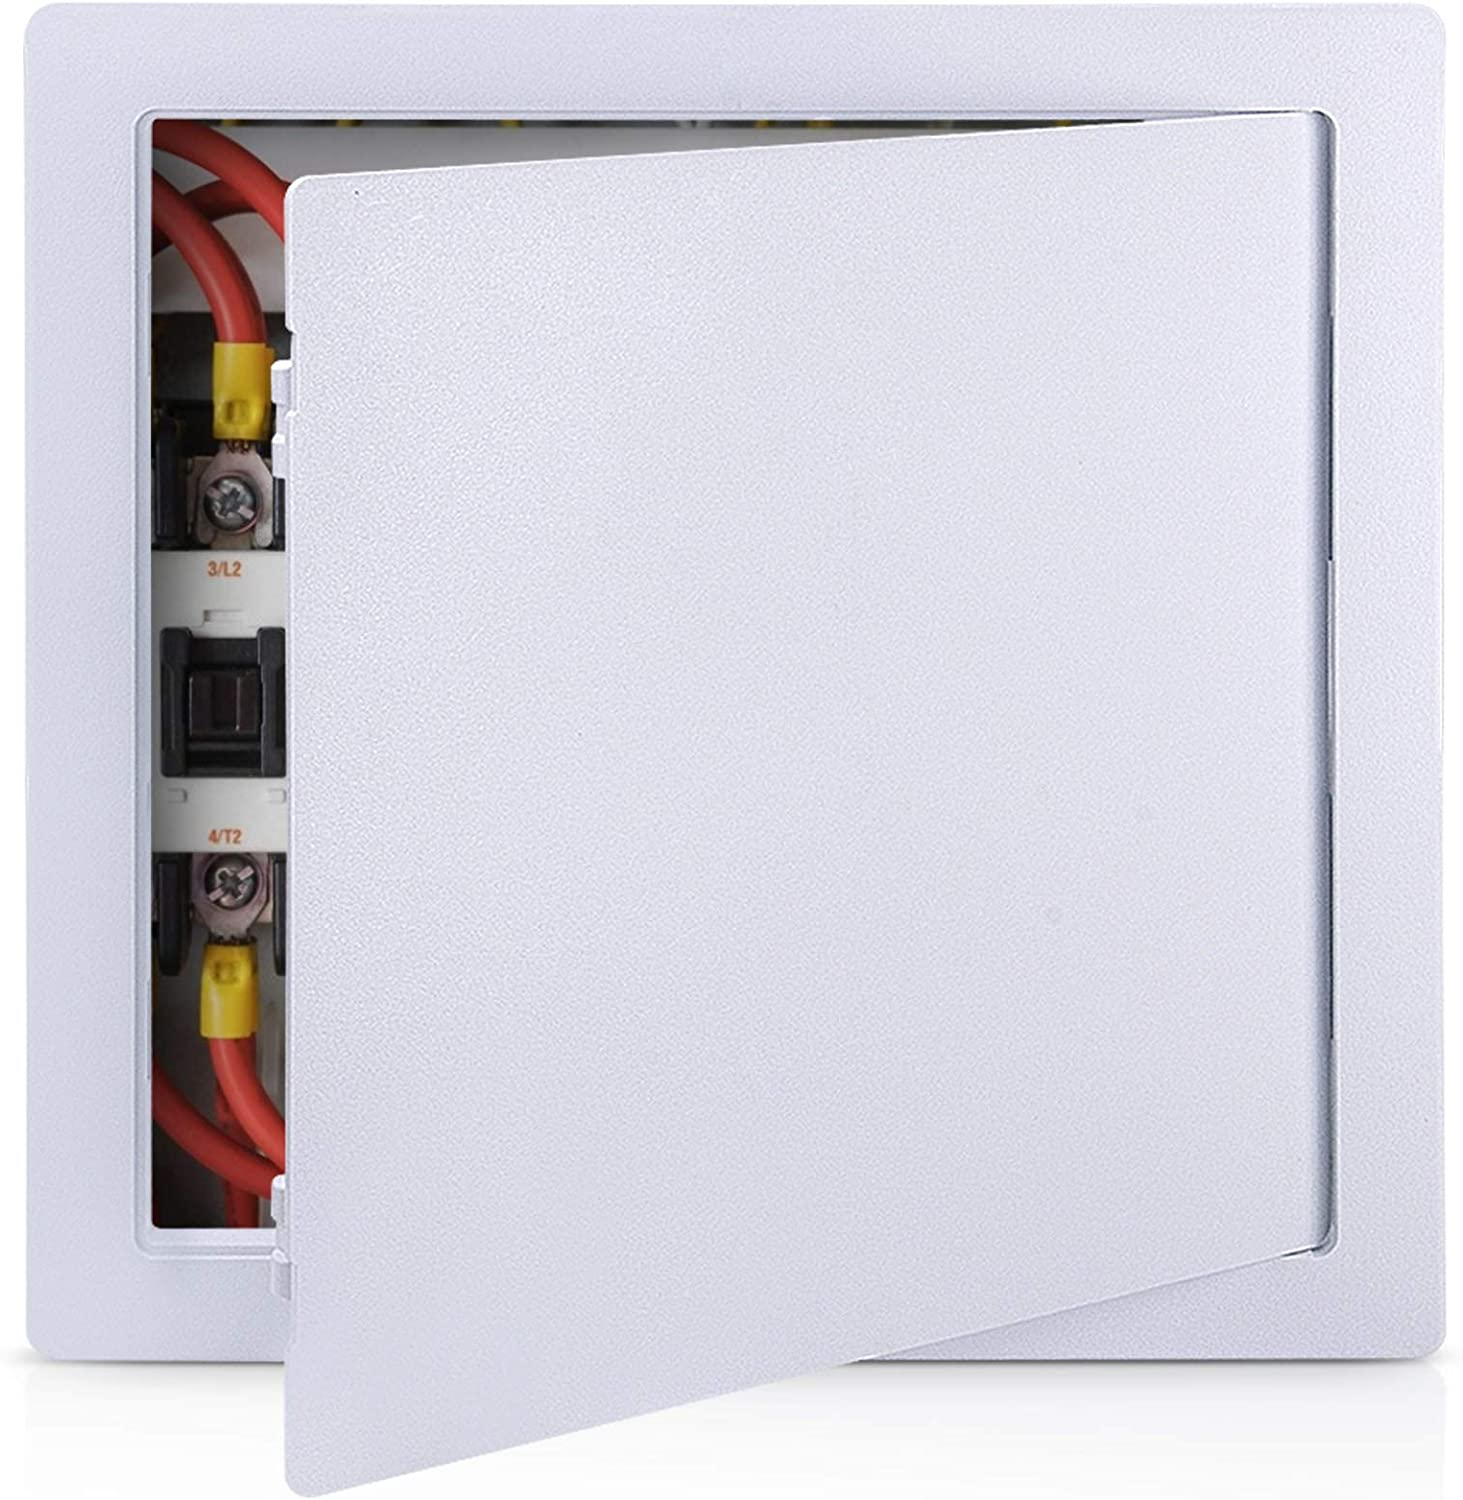 PNKKODW Plumbing Access Panel for Drywall A High quality Plastic x 14 OFFer Inch